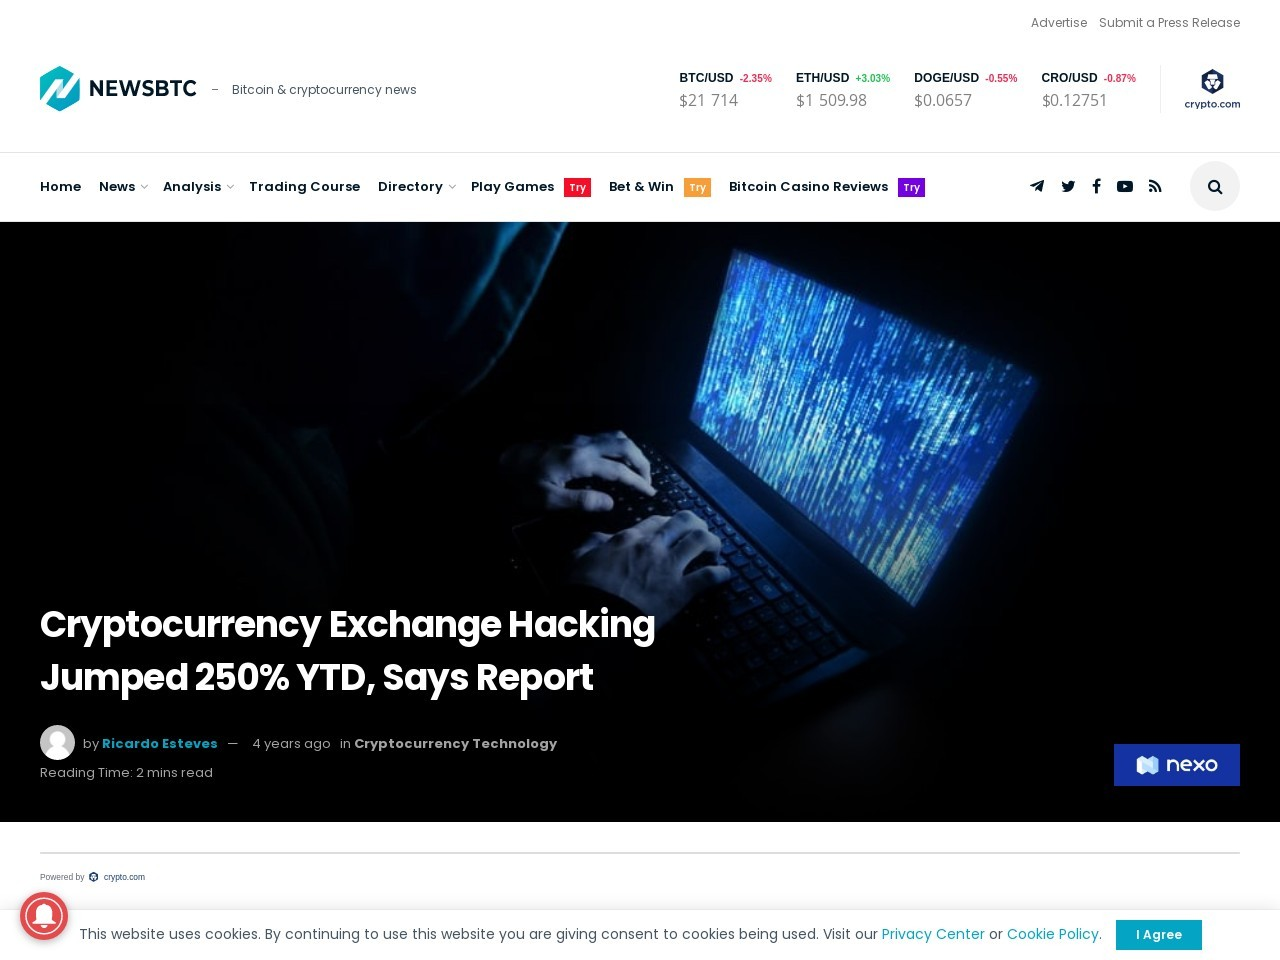 Cryptocurrency Exchange Hacking Jumped 250% YTD, Says Report